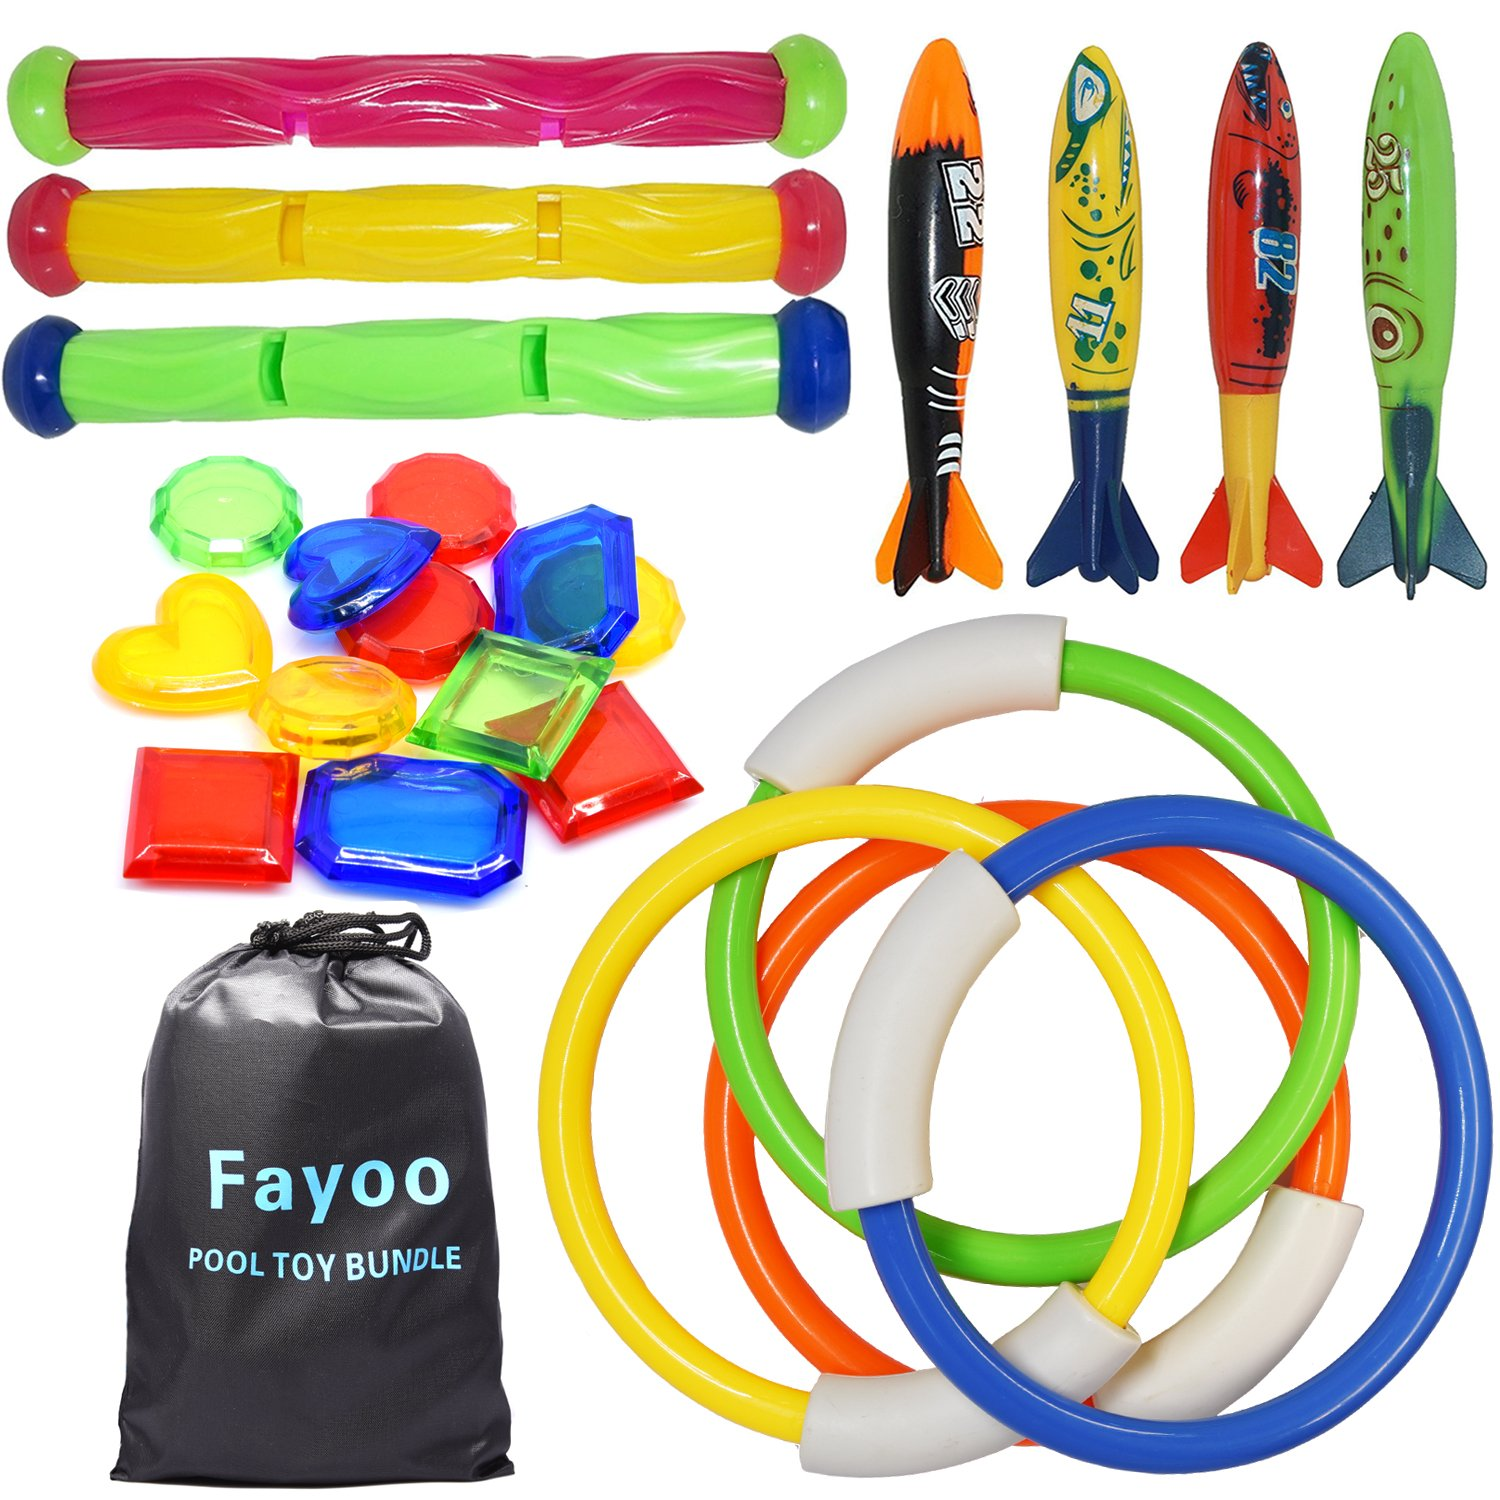 Fayoo 23 Pack Underwater Swimming/Diving Pool Toys Diving Rings(4 Pcs), Toypedo Bandits(4 Pcs), Diving Sticks(3 Pcs) with Under Water Treasures (12 Pcs) Gift Set Bundle, Ages 3+ by Fayoo